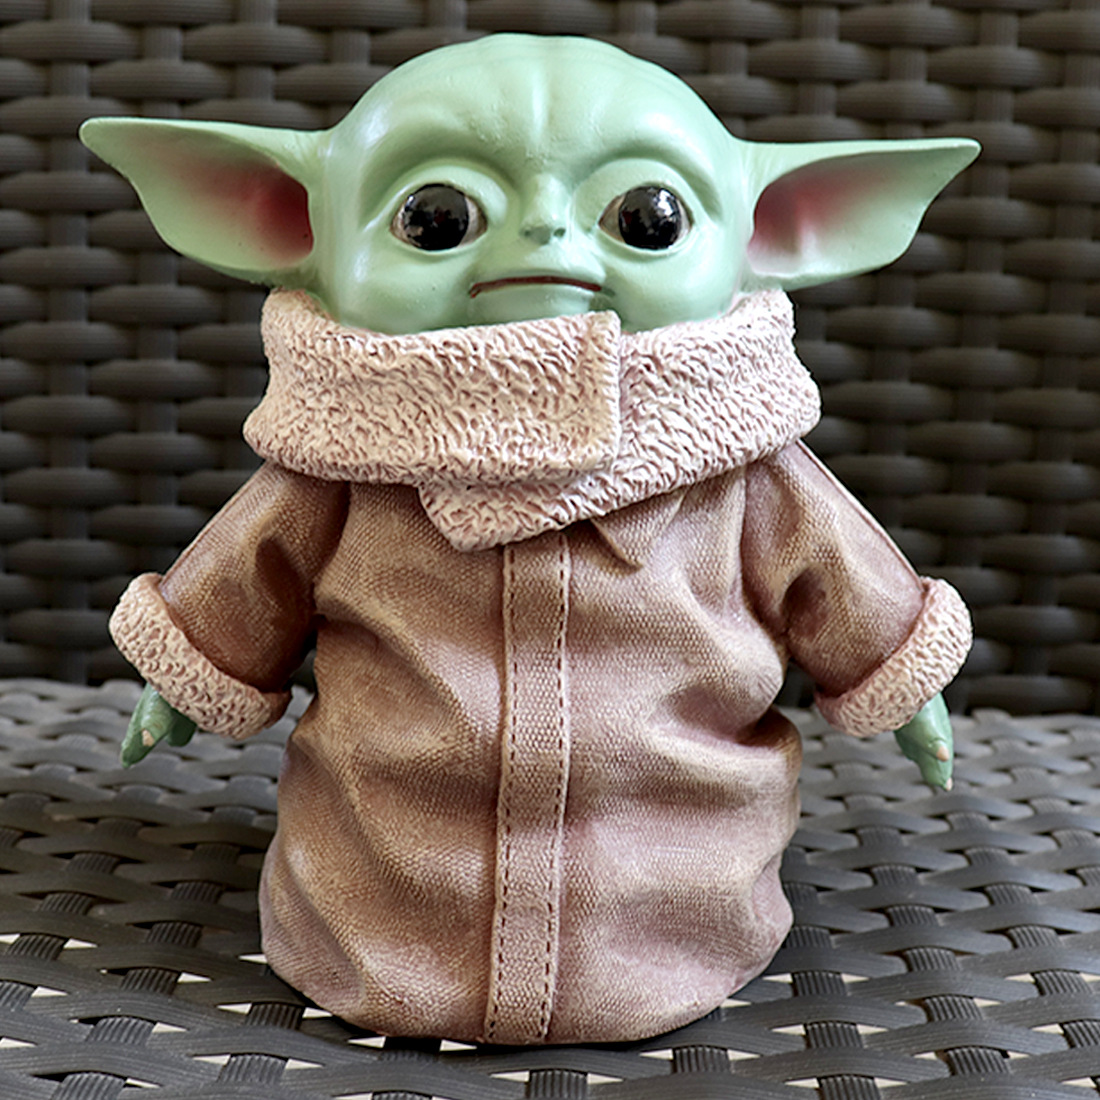 Master Yoda Anime Film Star Wars Yoda Resin Action Figure The Force Awakens Pendant Model Gifts Toys for Children 3Y06 image